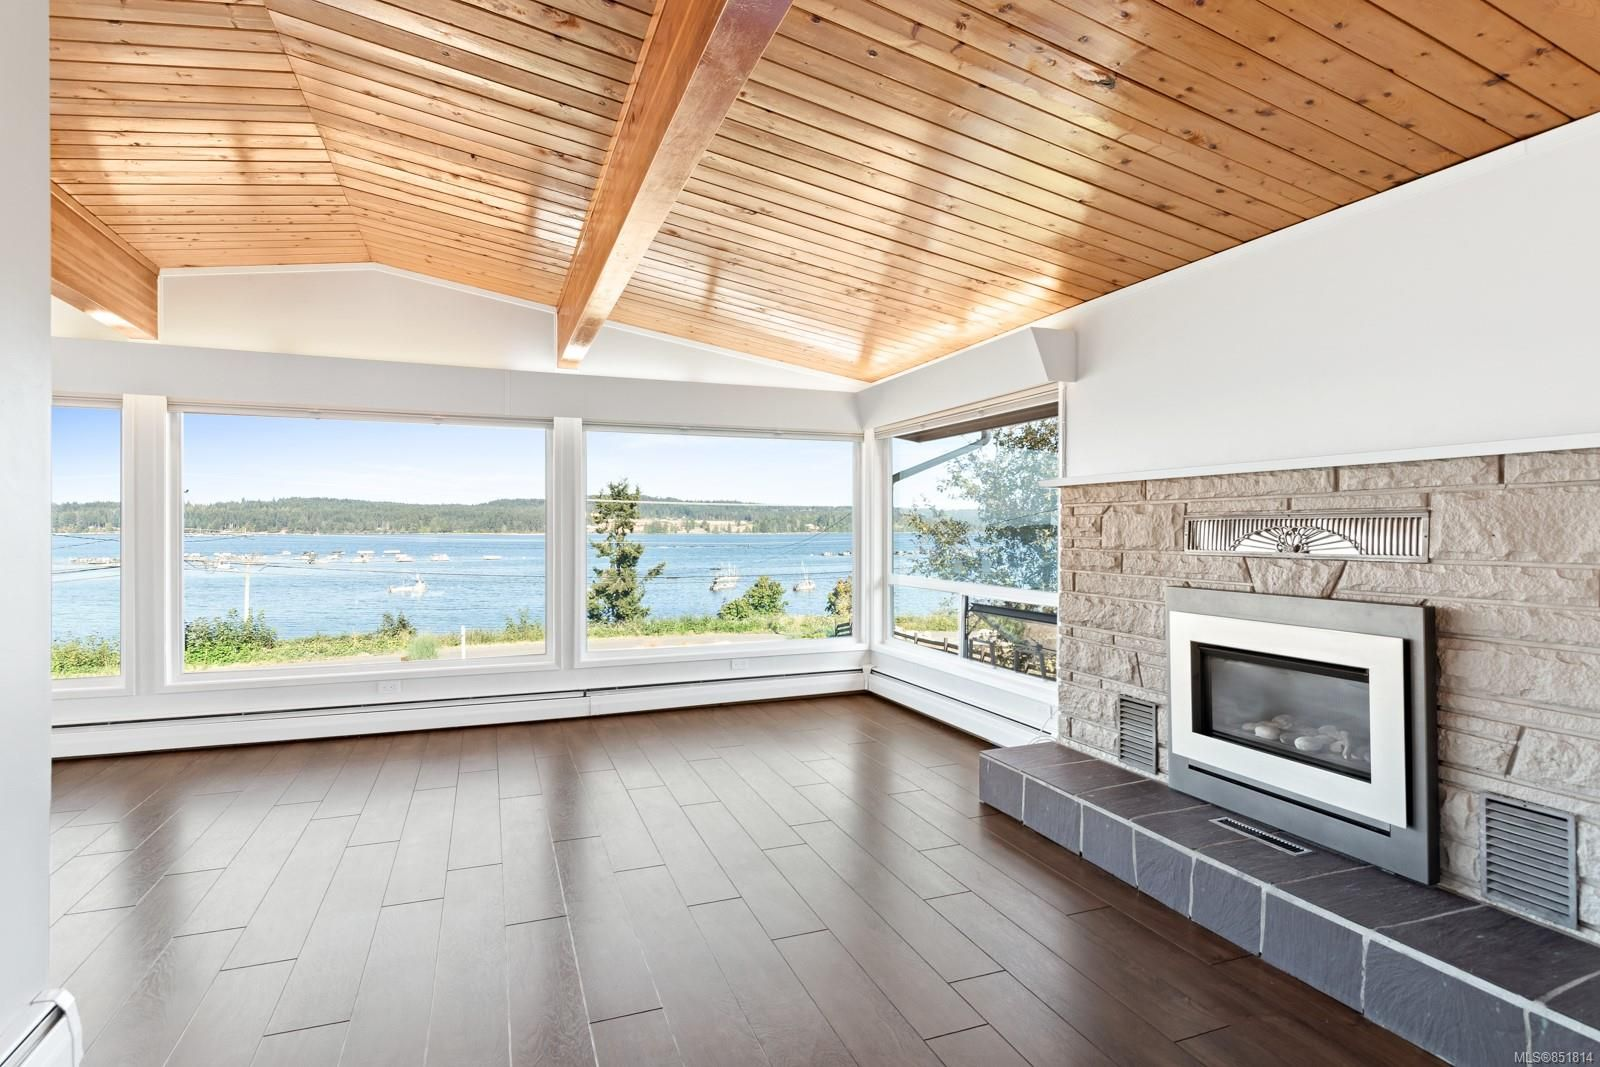 Photo 5: Photos: 191 Muschamp Rd in : CV Union Bay/Fanny Bay House for sale (Comox Valley)  : MLS®# 851814